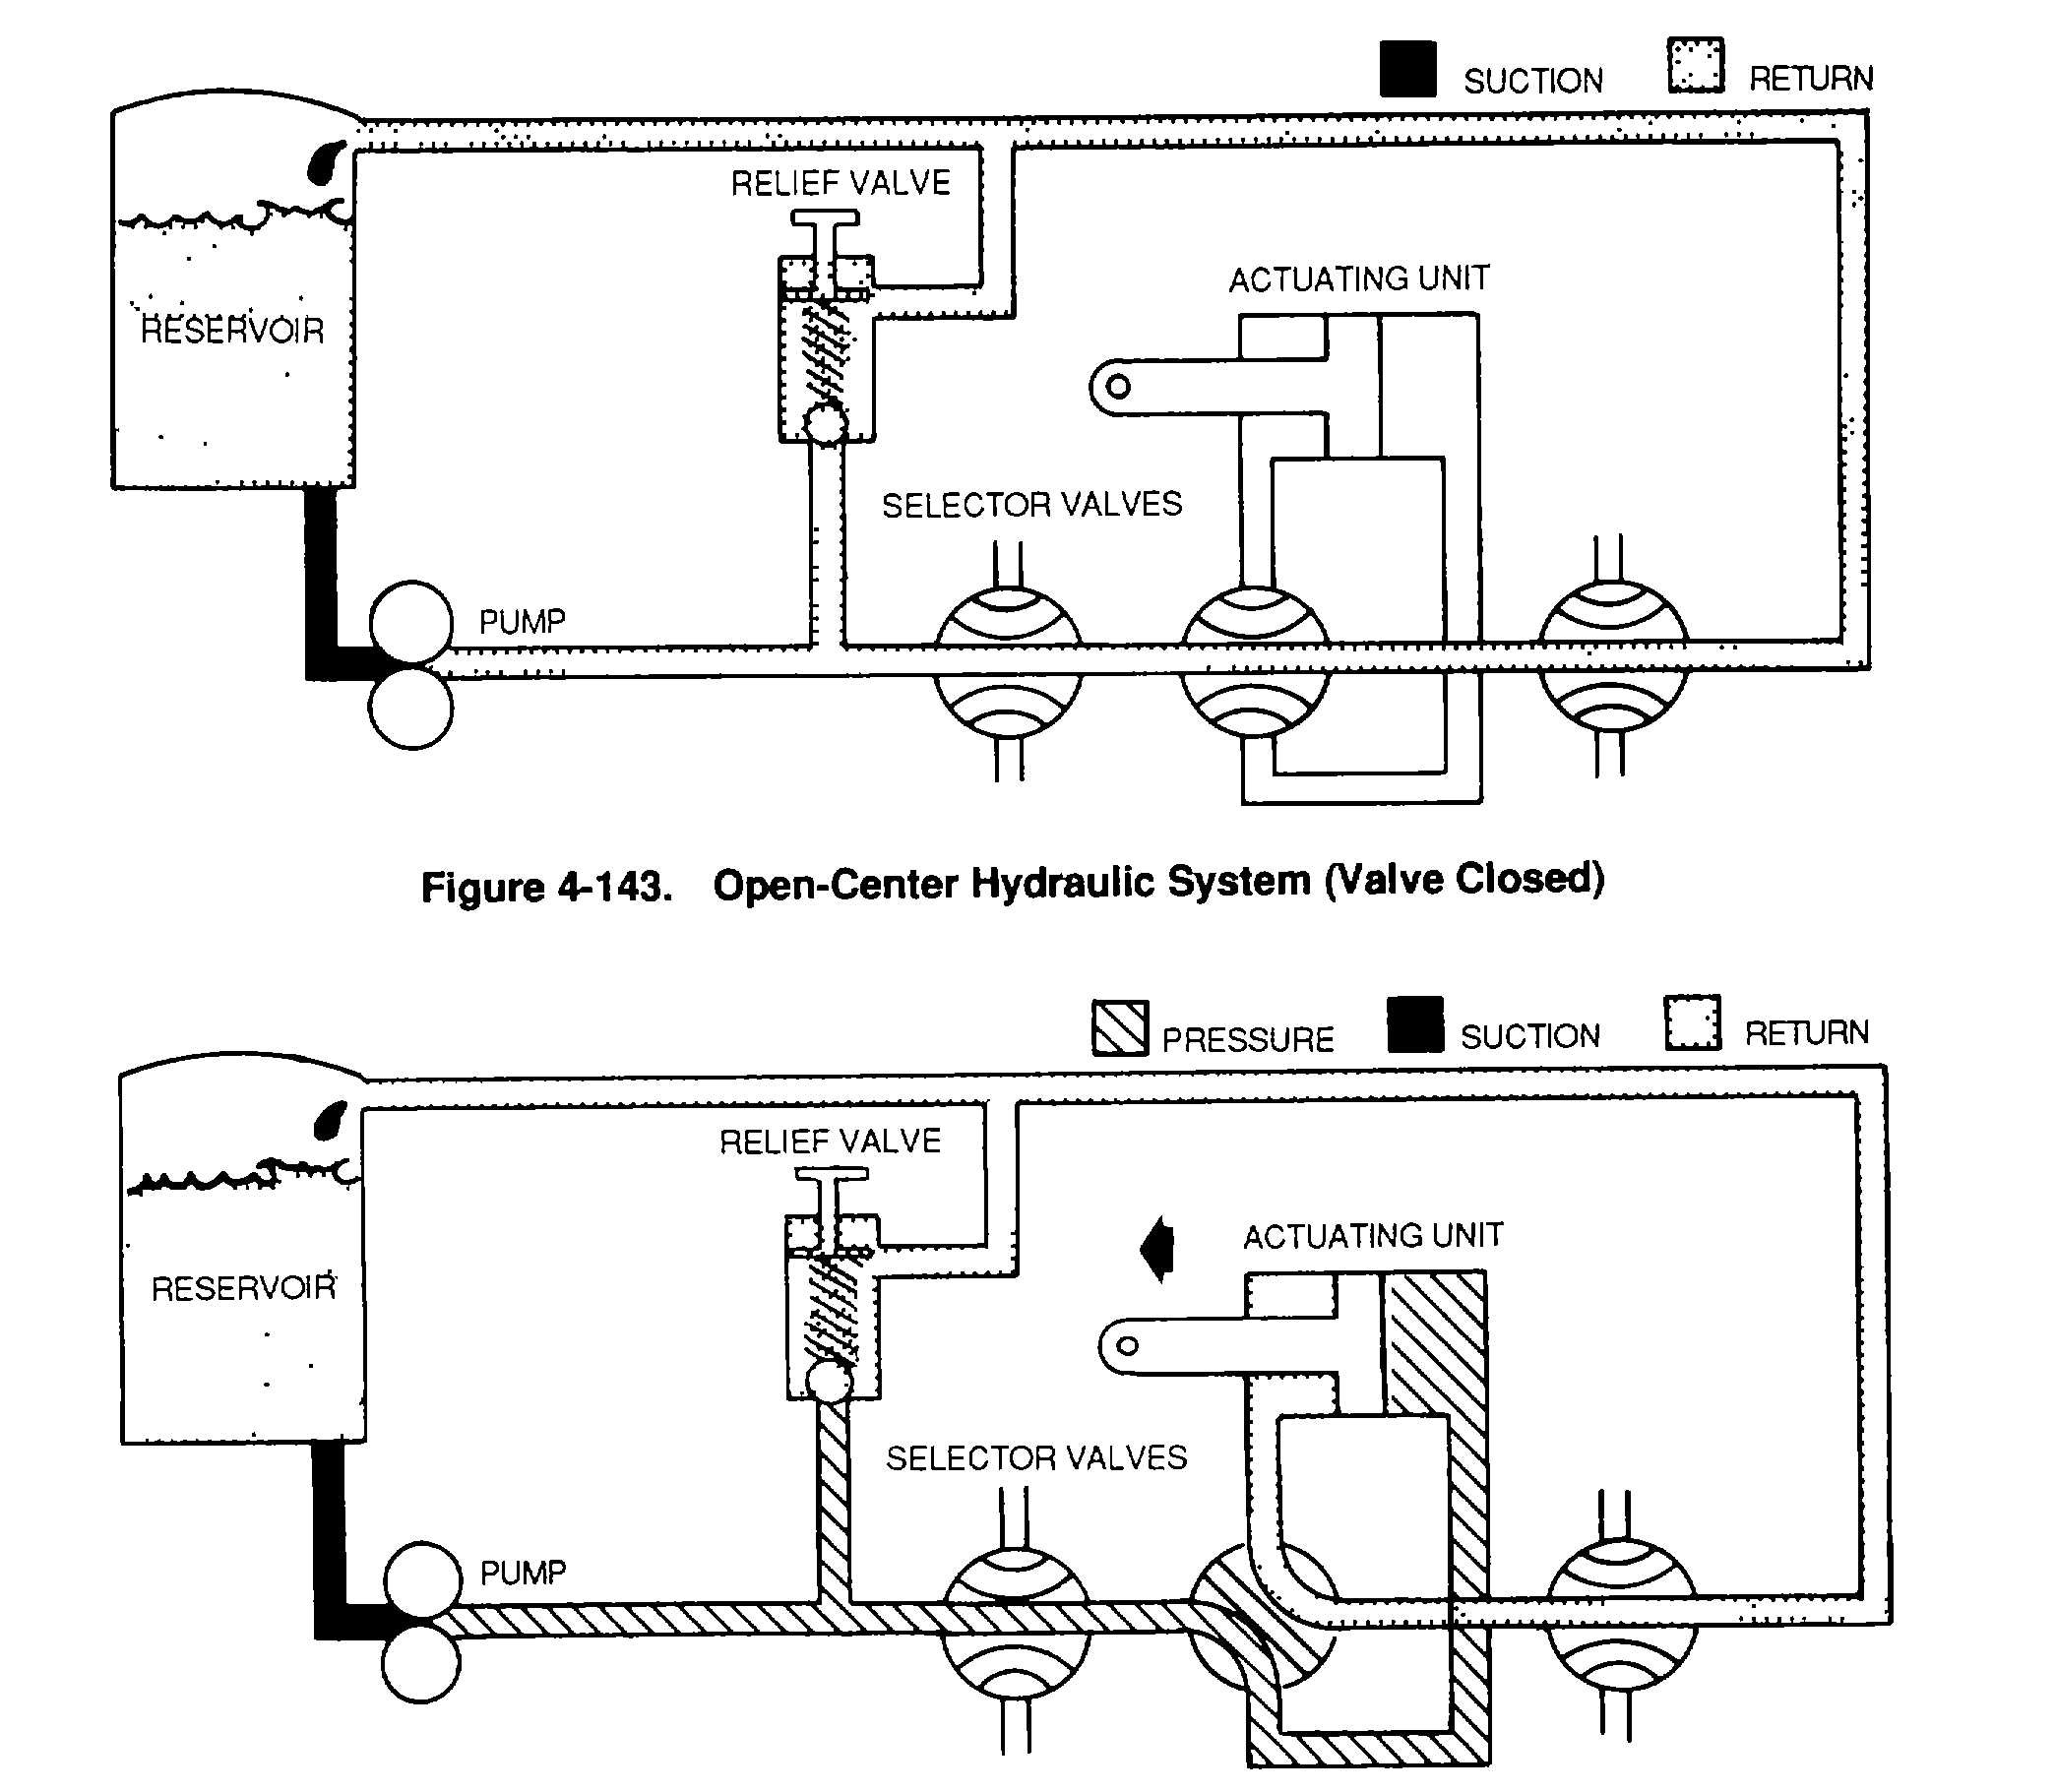 hydraulic solenoid valve wiring diagram Collection-Gas Solenoid Valve Wiring Diagram Simple Hydraulic Solenoid Valve Wiring Diagram Unique Circuit Diagram 13-o